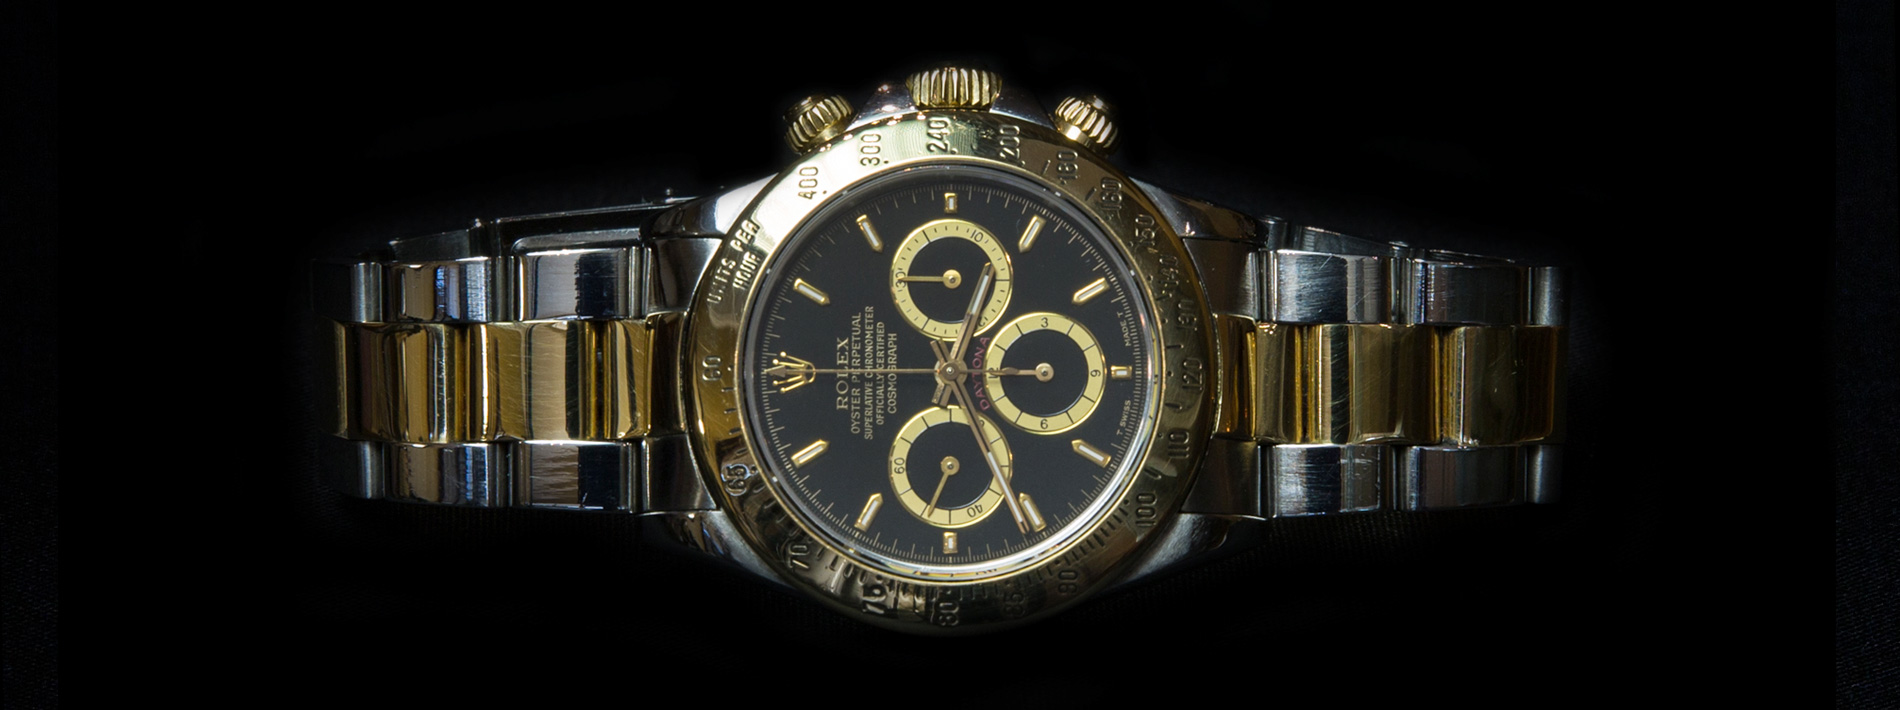 Rolexperpetual